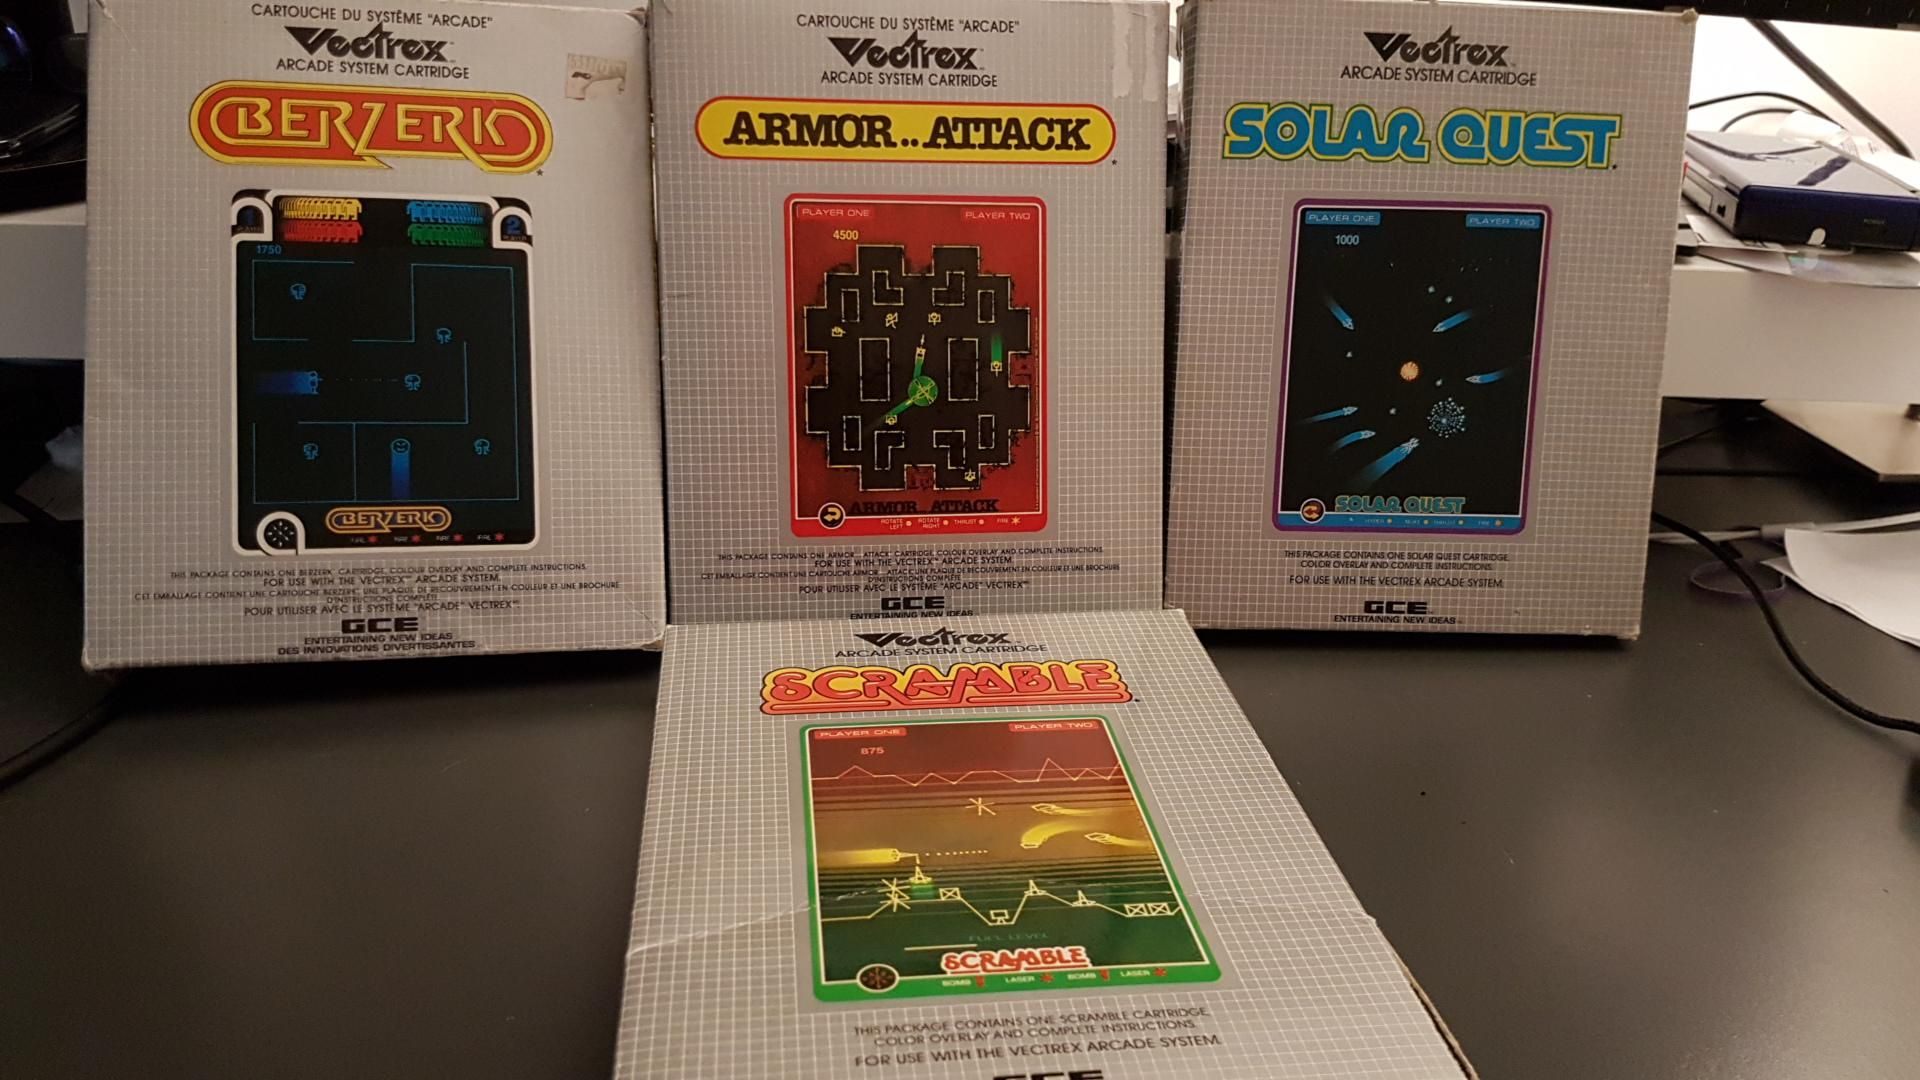 I Had No Games For My New Vectrex Fixed That